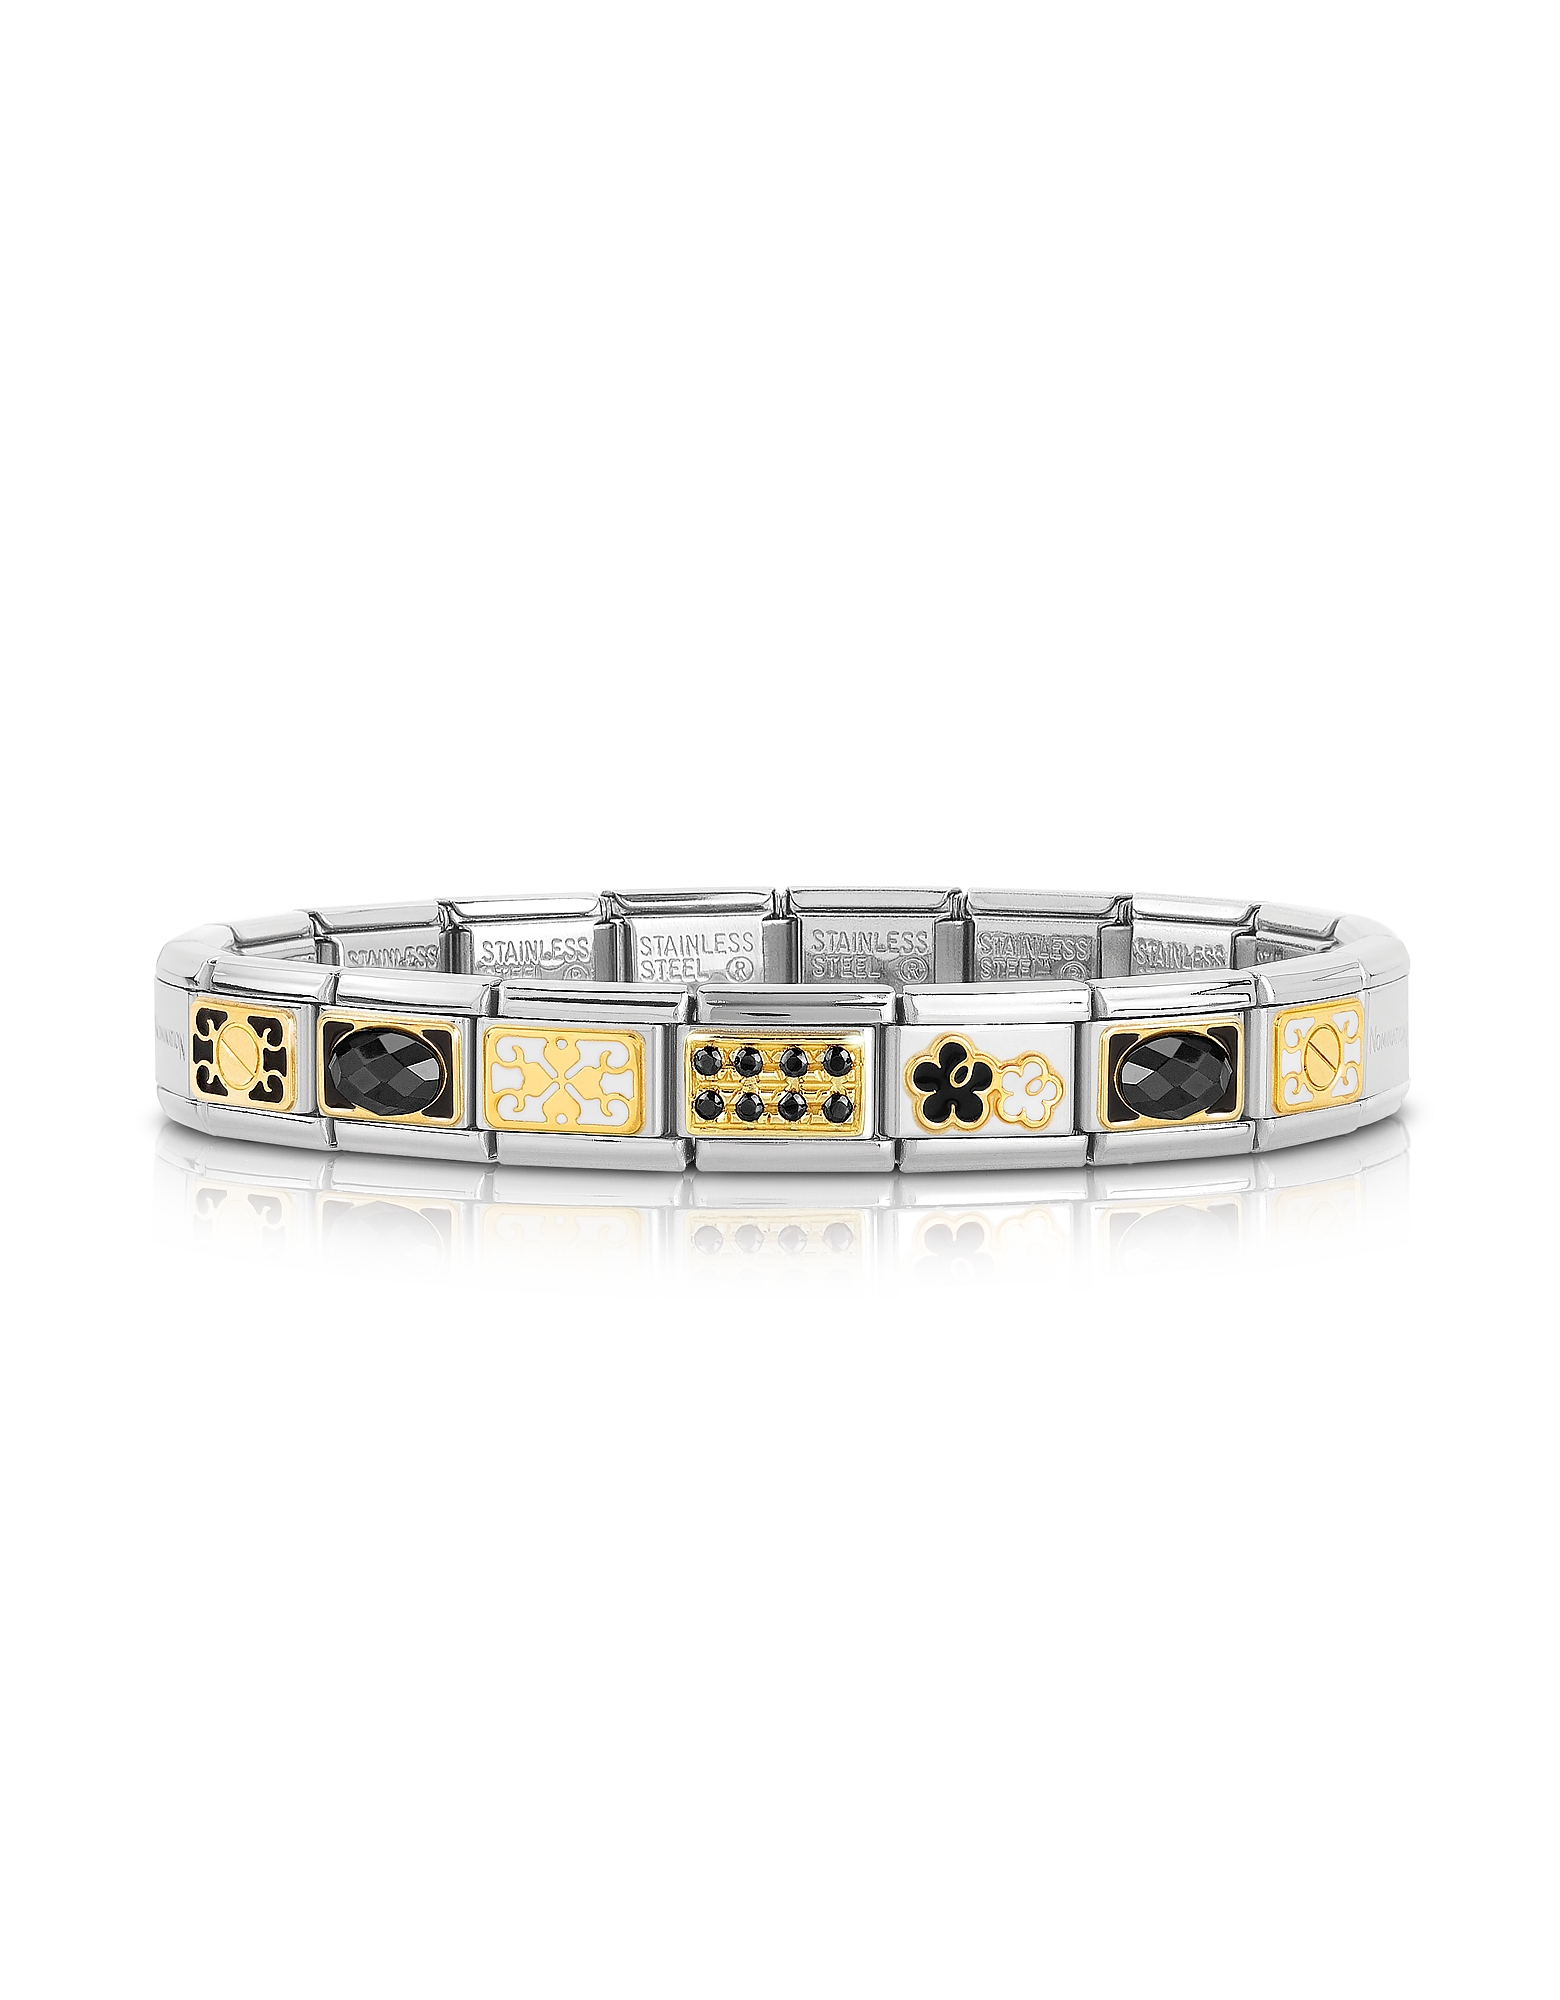 Nomination Bracelets, Classic Elegance Gold and Stainless Steel Bracelet w/Black Gemstone